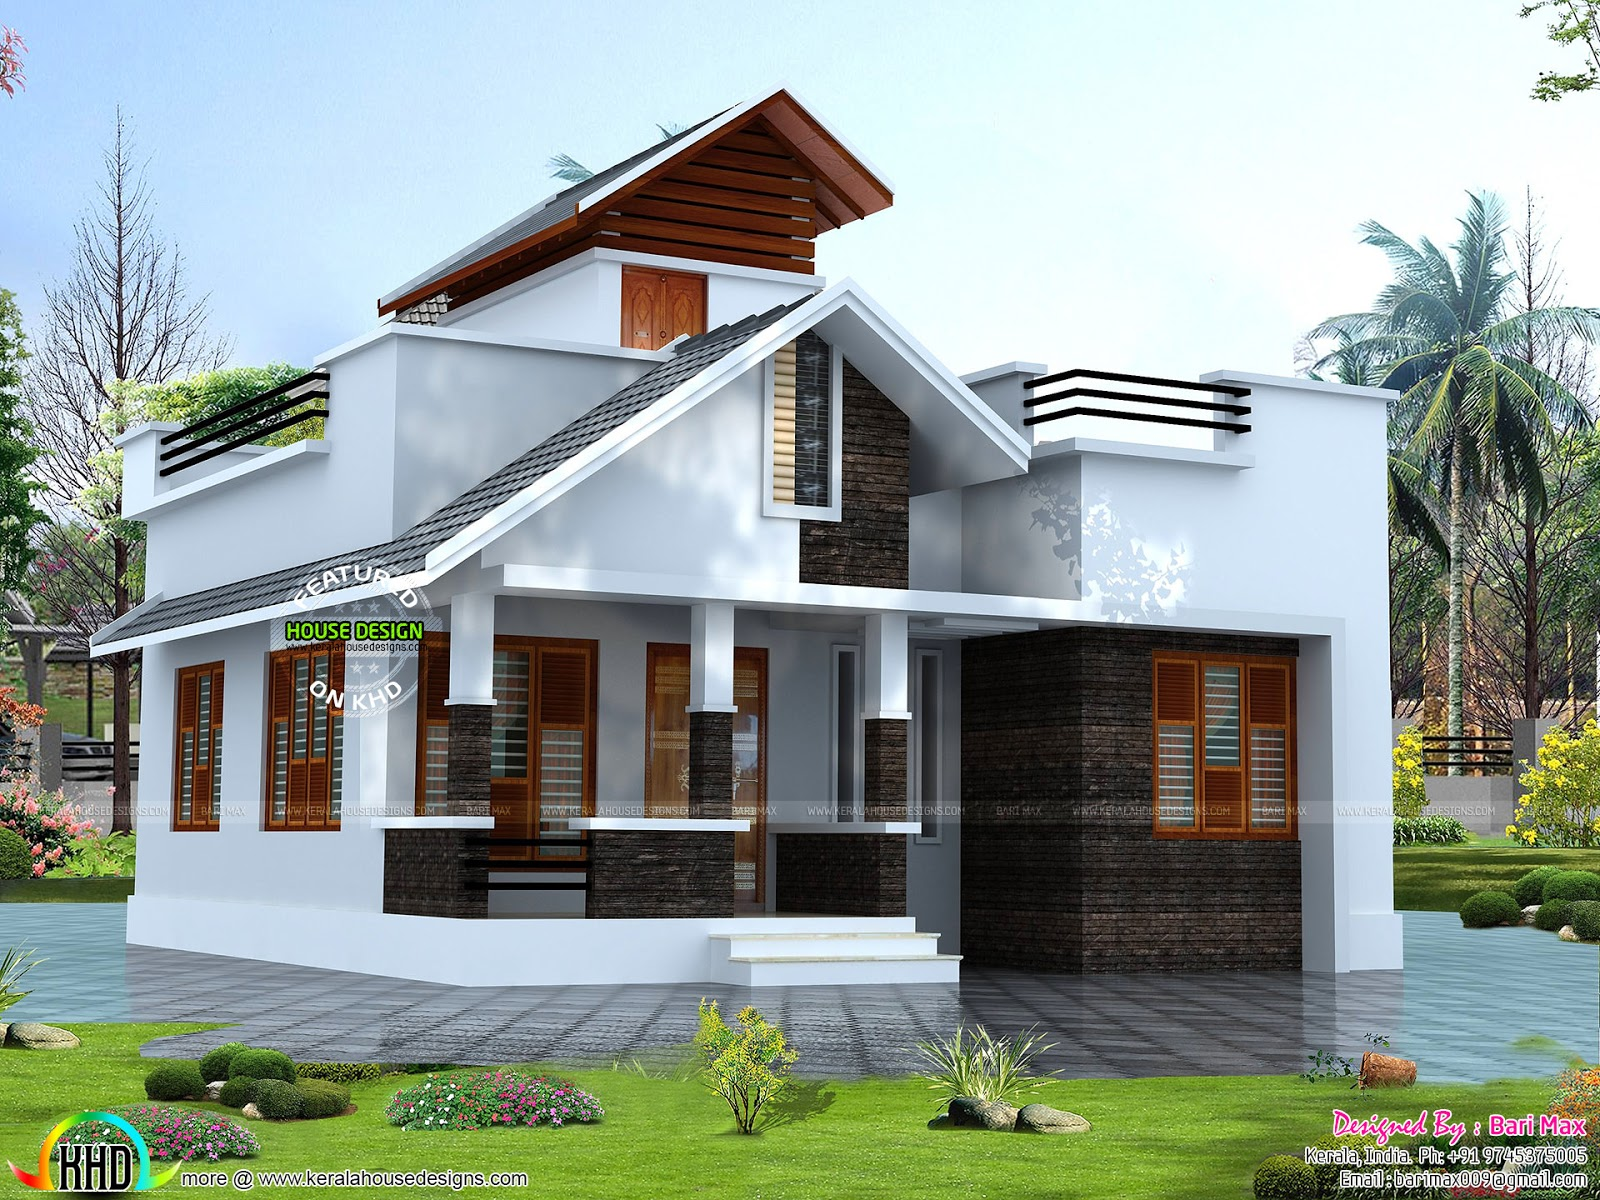 Rs 12 lakh house architecture kerala home design and Low cost home design in india